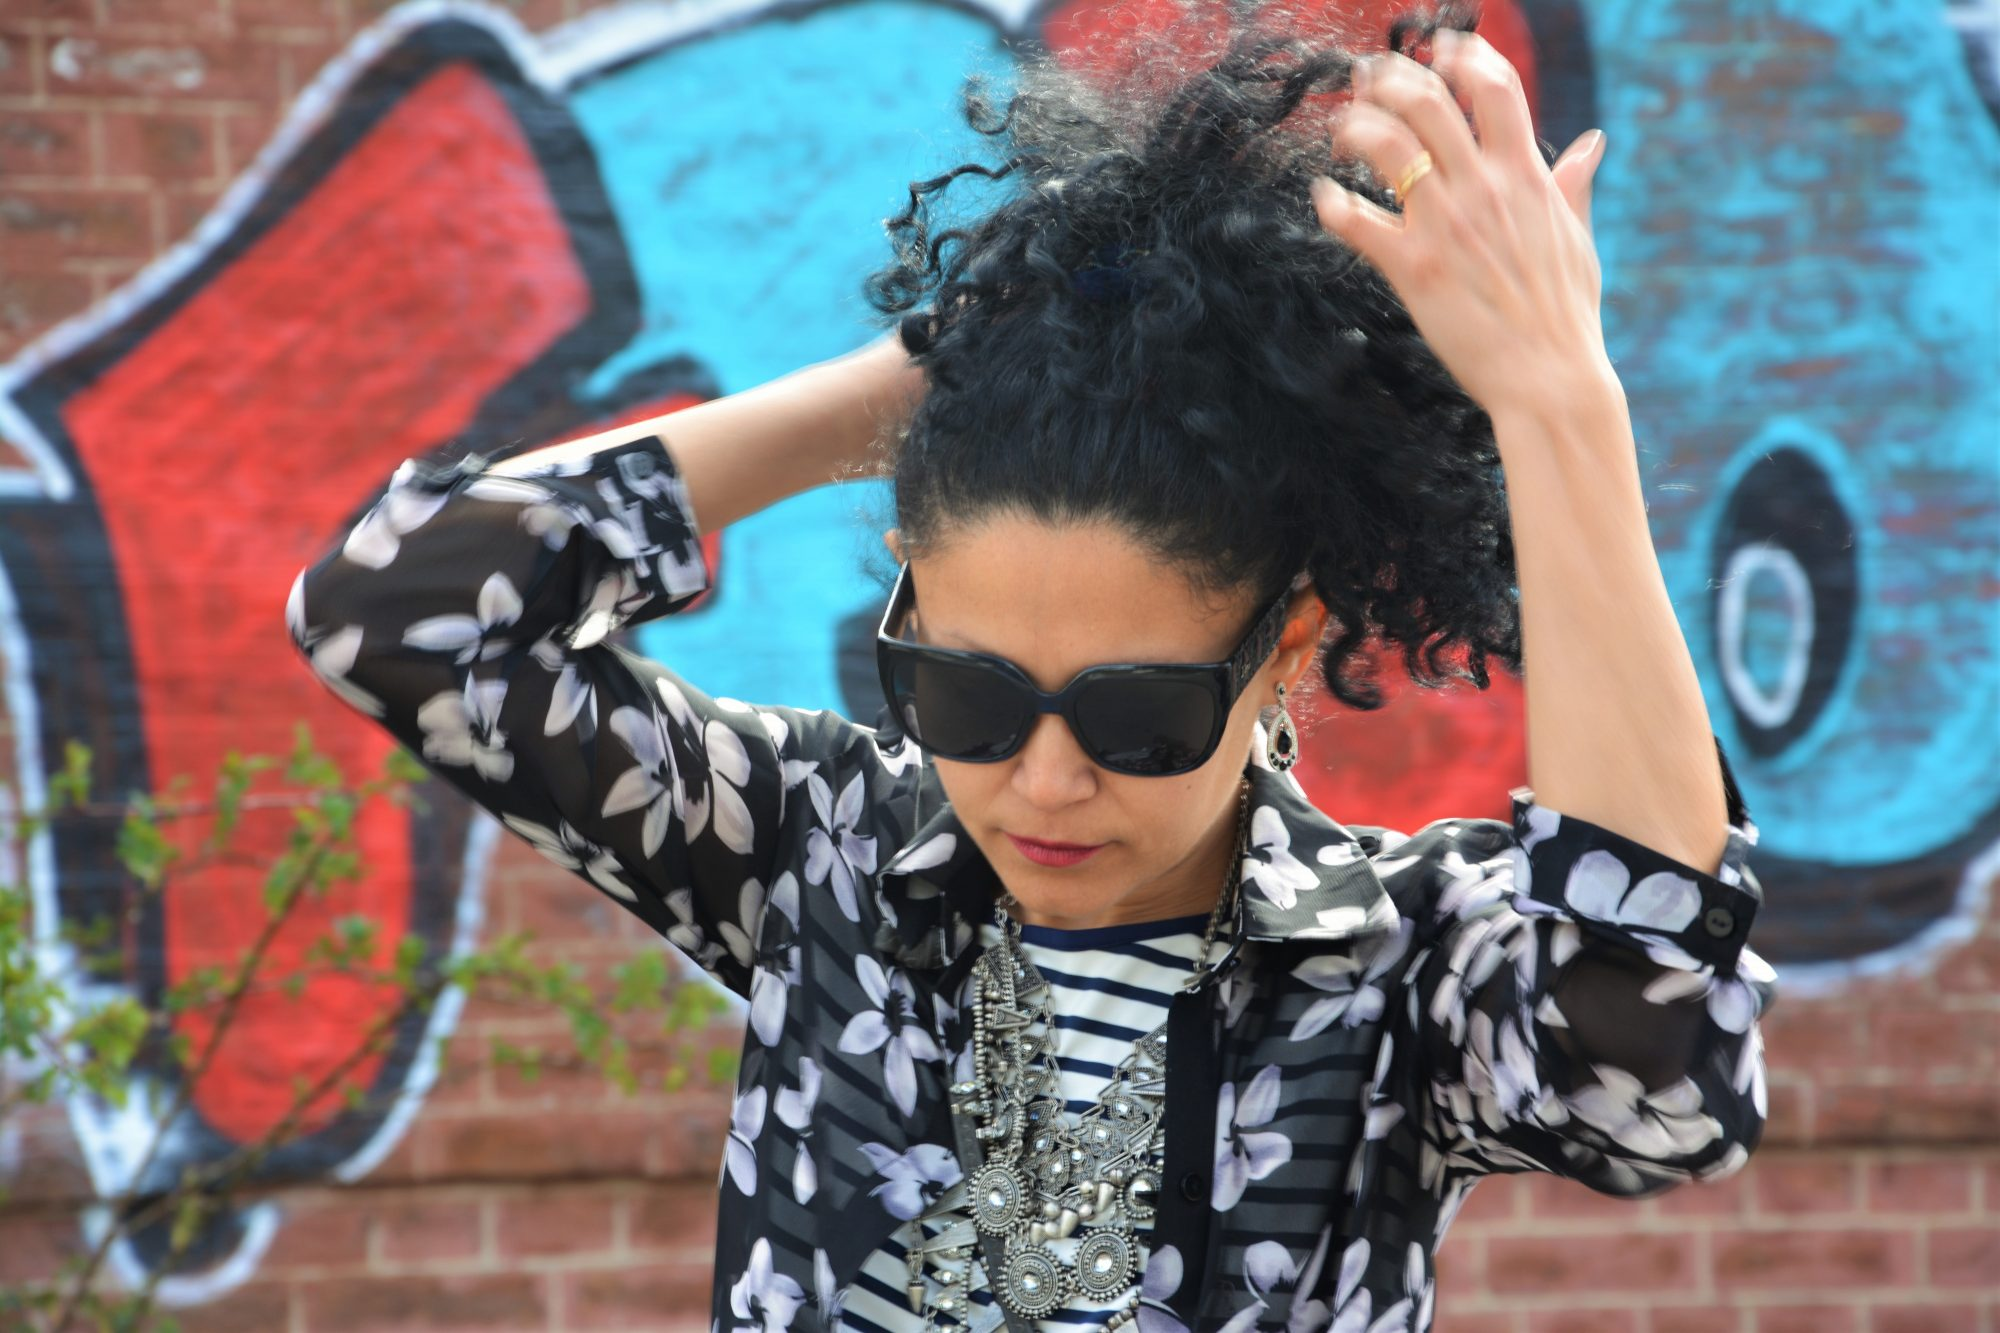 octavoo post